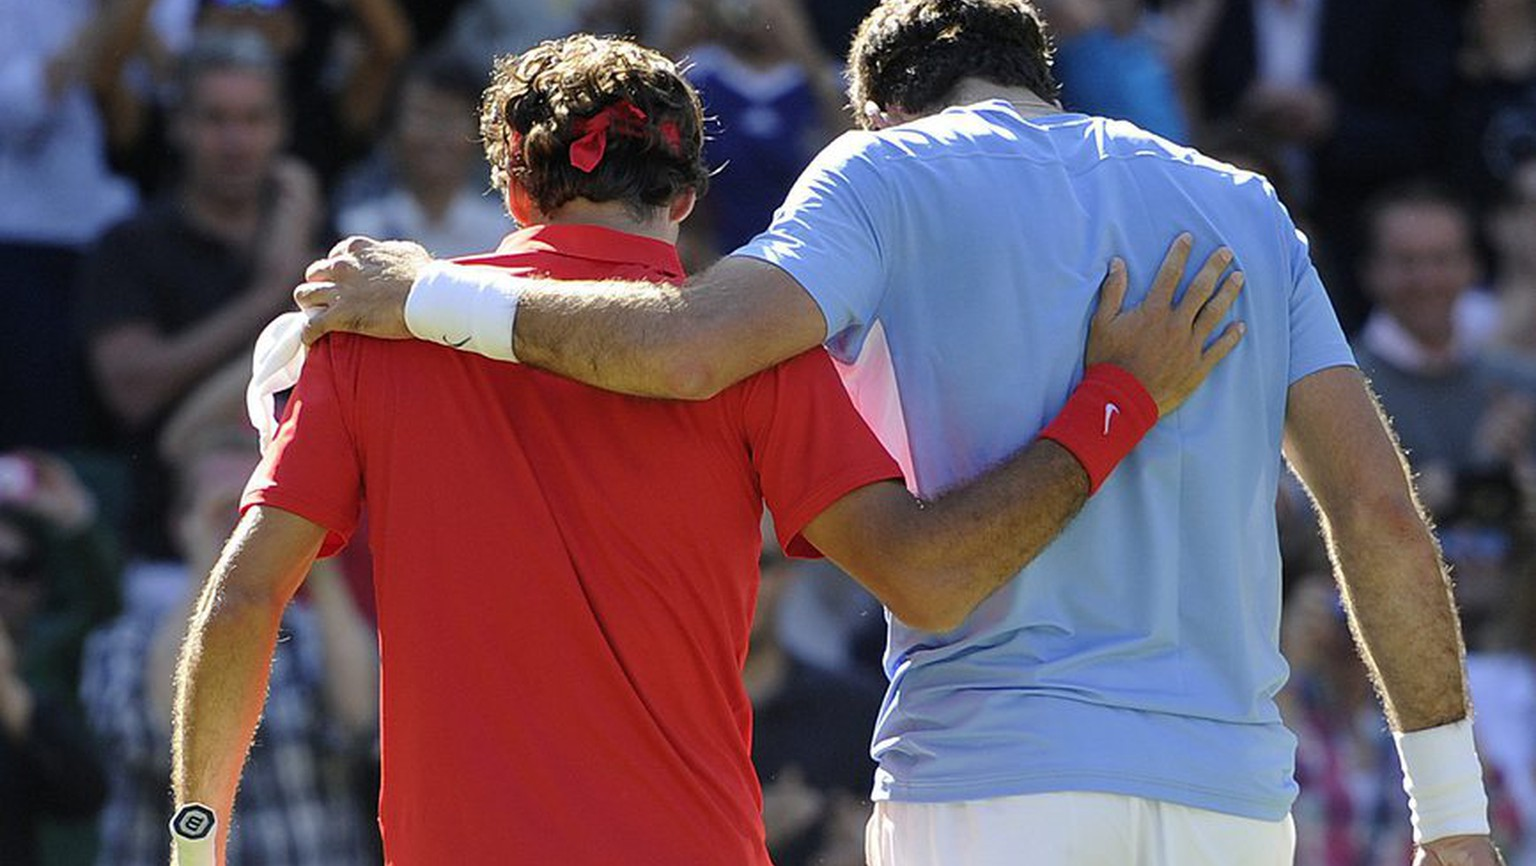 Switzerland's Roger Federer, left, and Argentina's Juan Martin Del Potro, right, leave the court after the men's semifinal singles match during the London 2012 Olympic Games Tennis competition in Wimbledon, Greater London, Britain, Wednesday, August 3, 2012. (KEYSTONE/Jean-Christophe Bott)